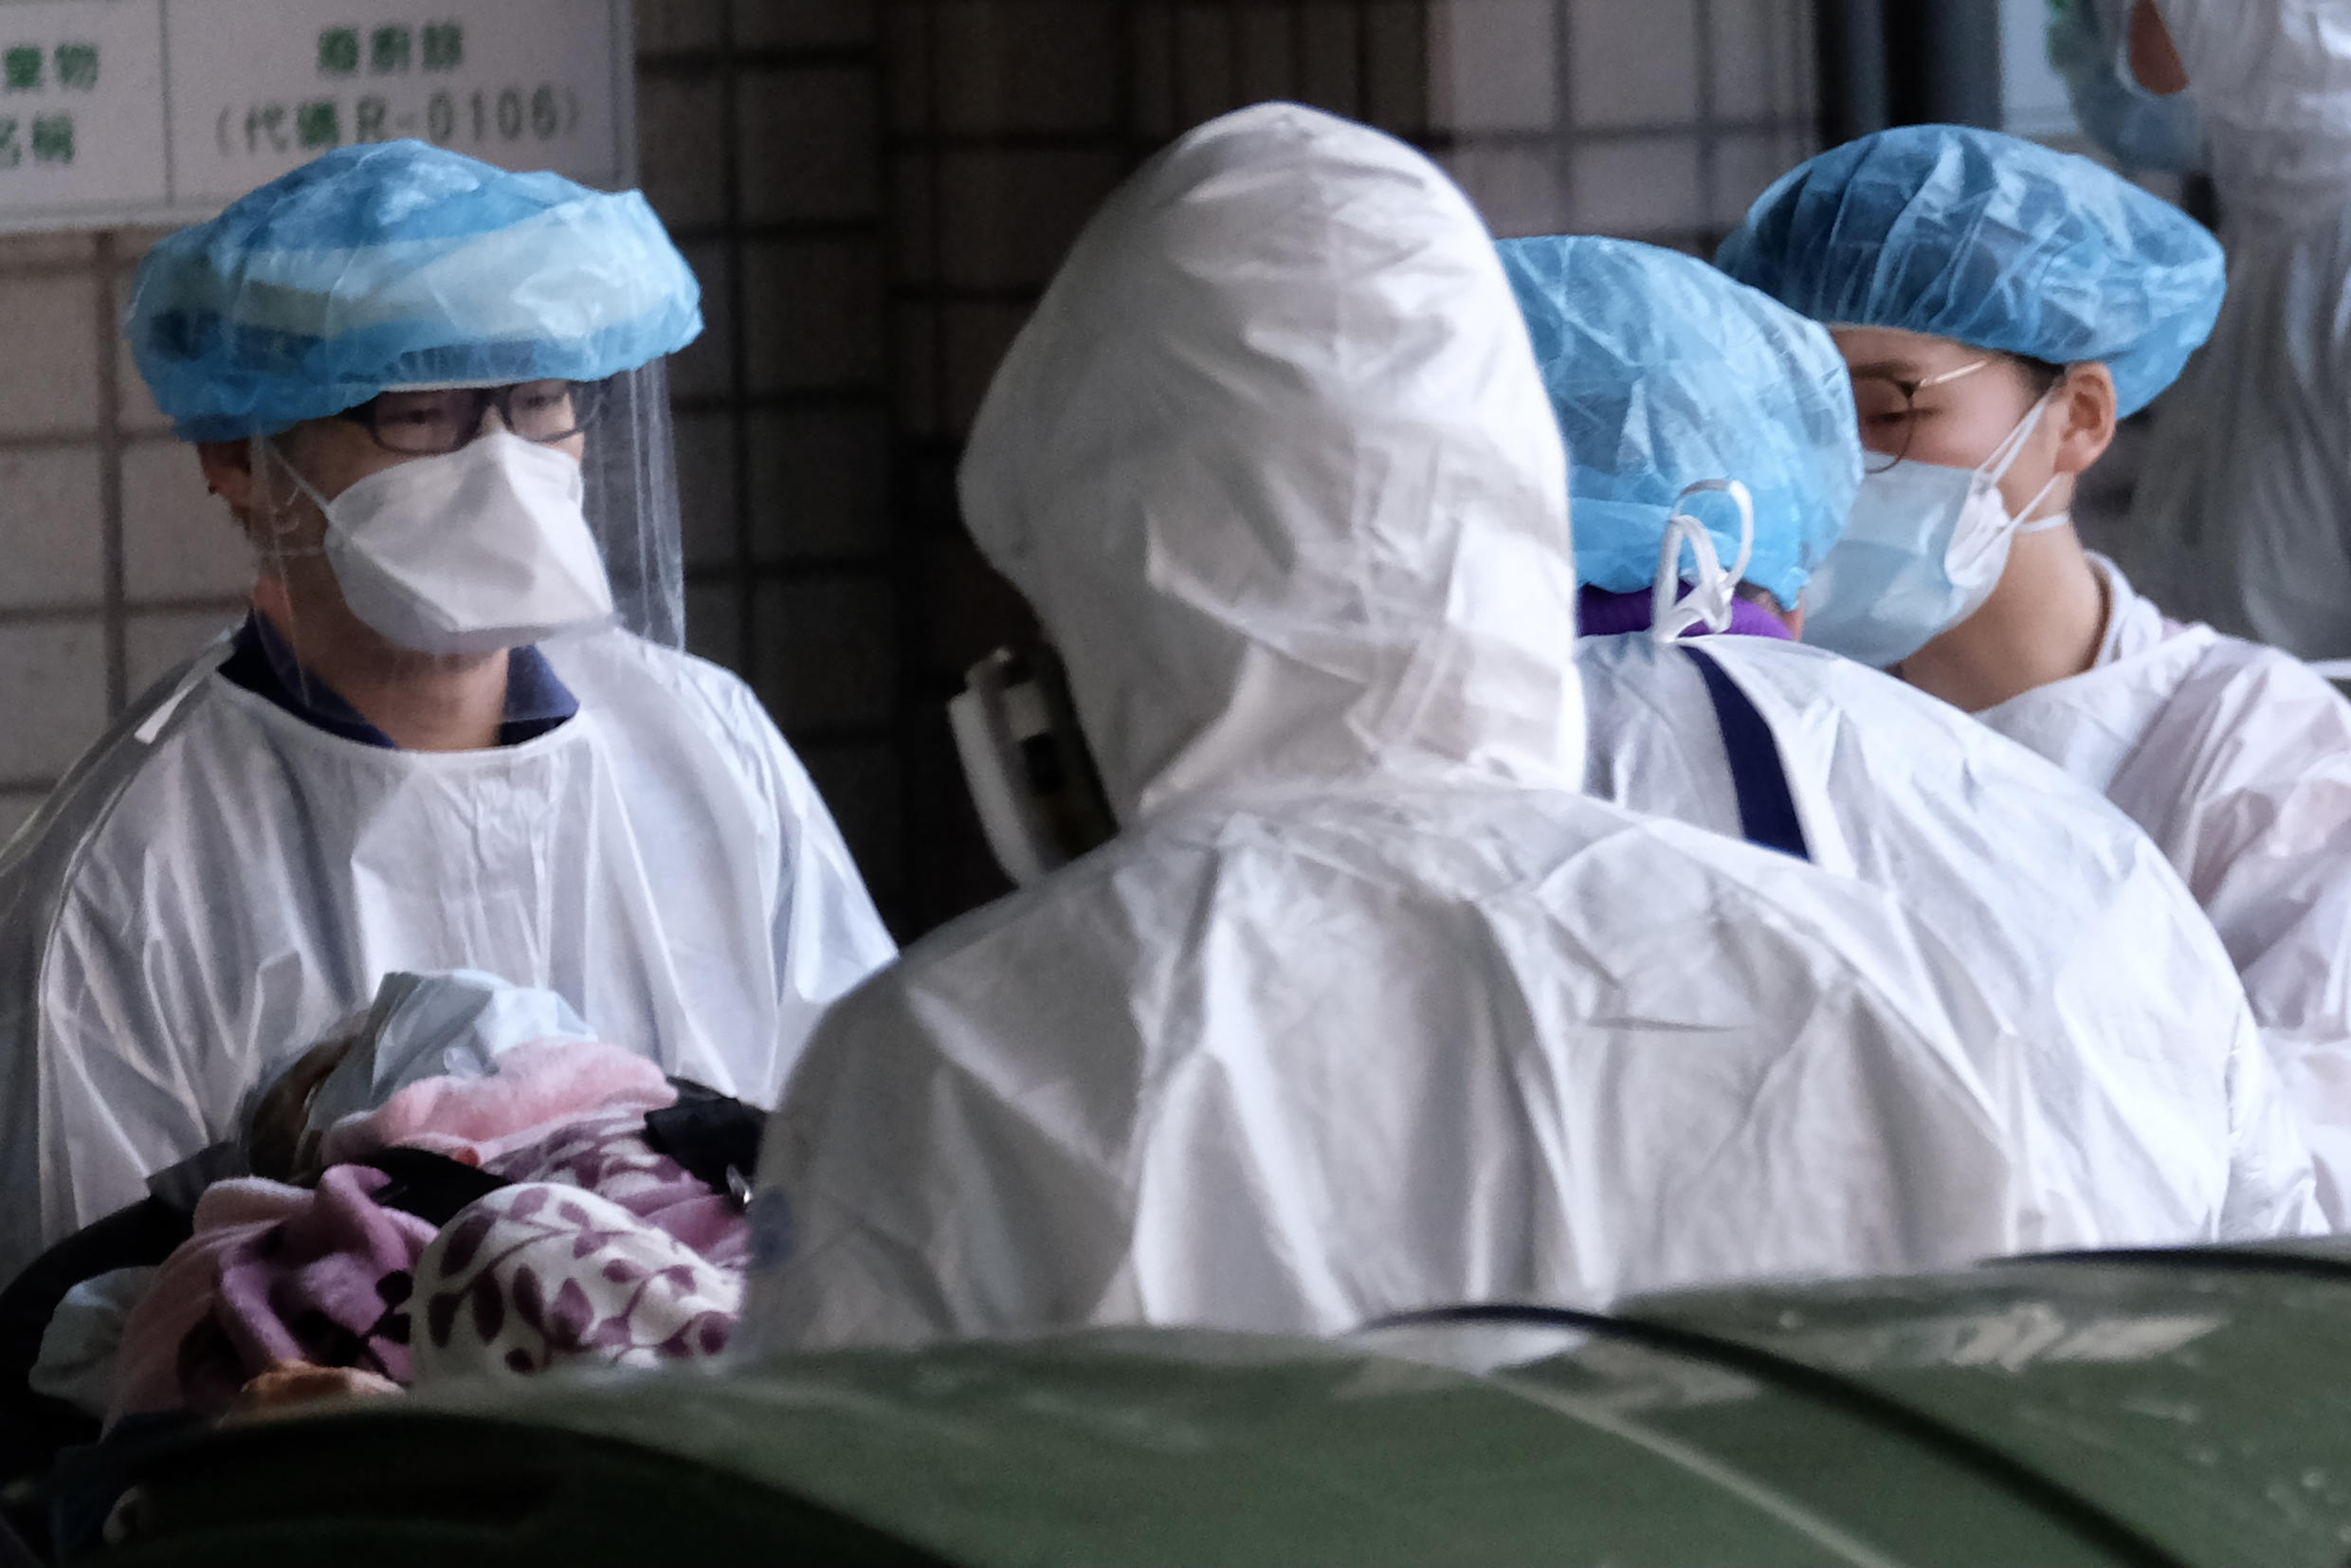 Masked medical staff escort a patient in January 2021 outside the Taoyuan General Hospital as Taiwan contained a small cluster of Covid-19 cases